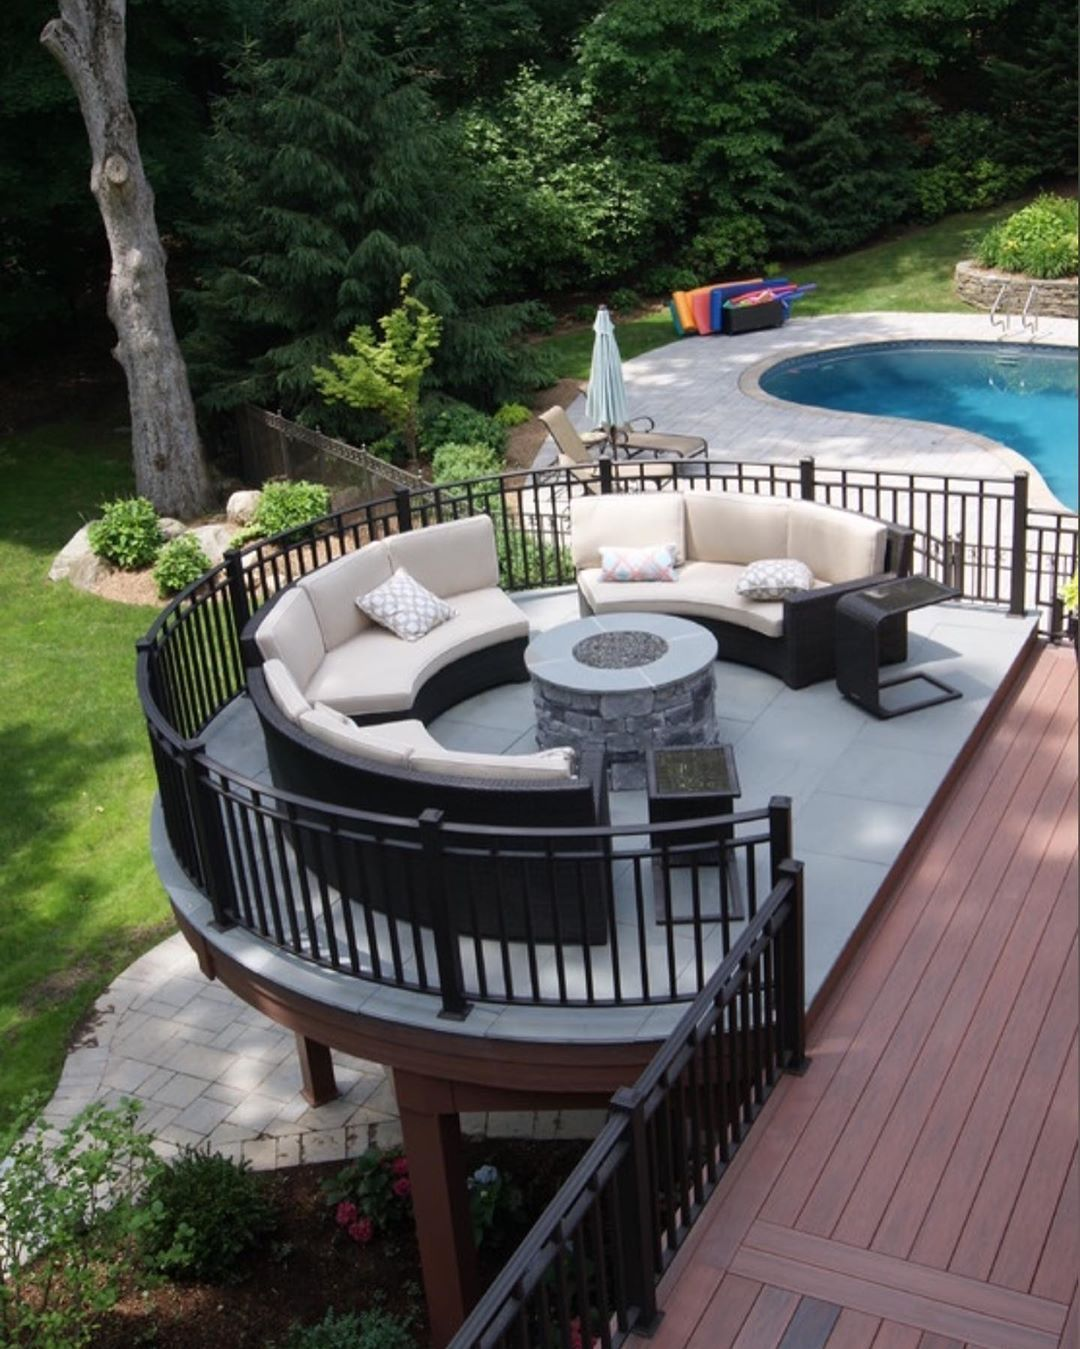 Pin By Helena Sura On Backyardyard In 2020 Dream House Exterior Patio Deck Designs House Design